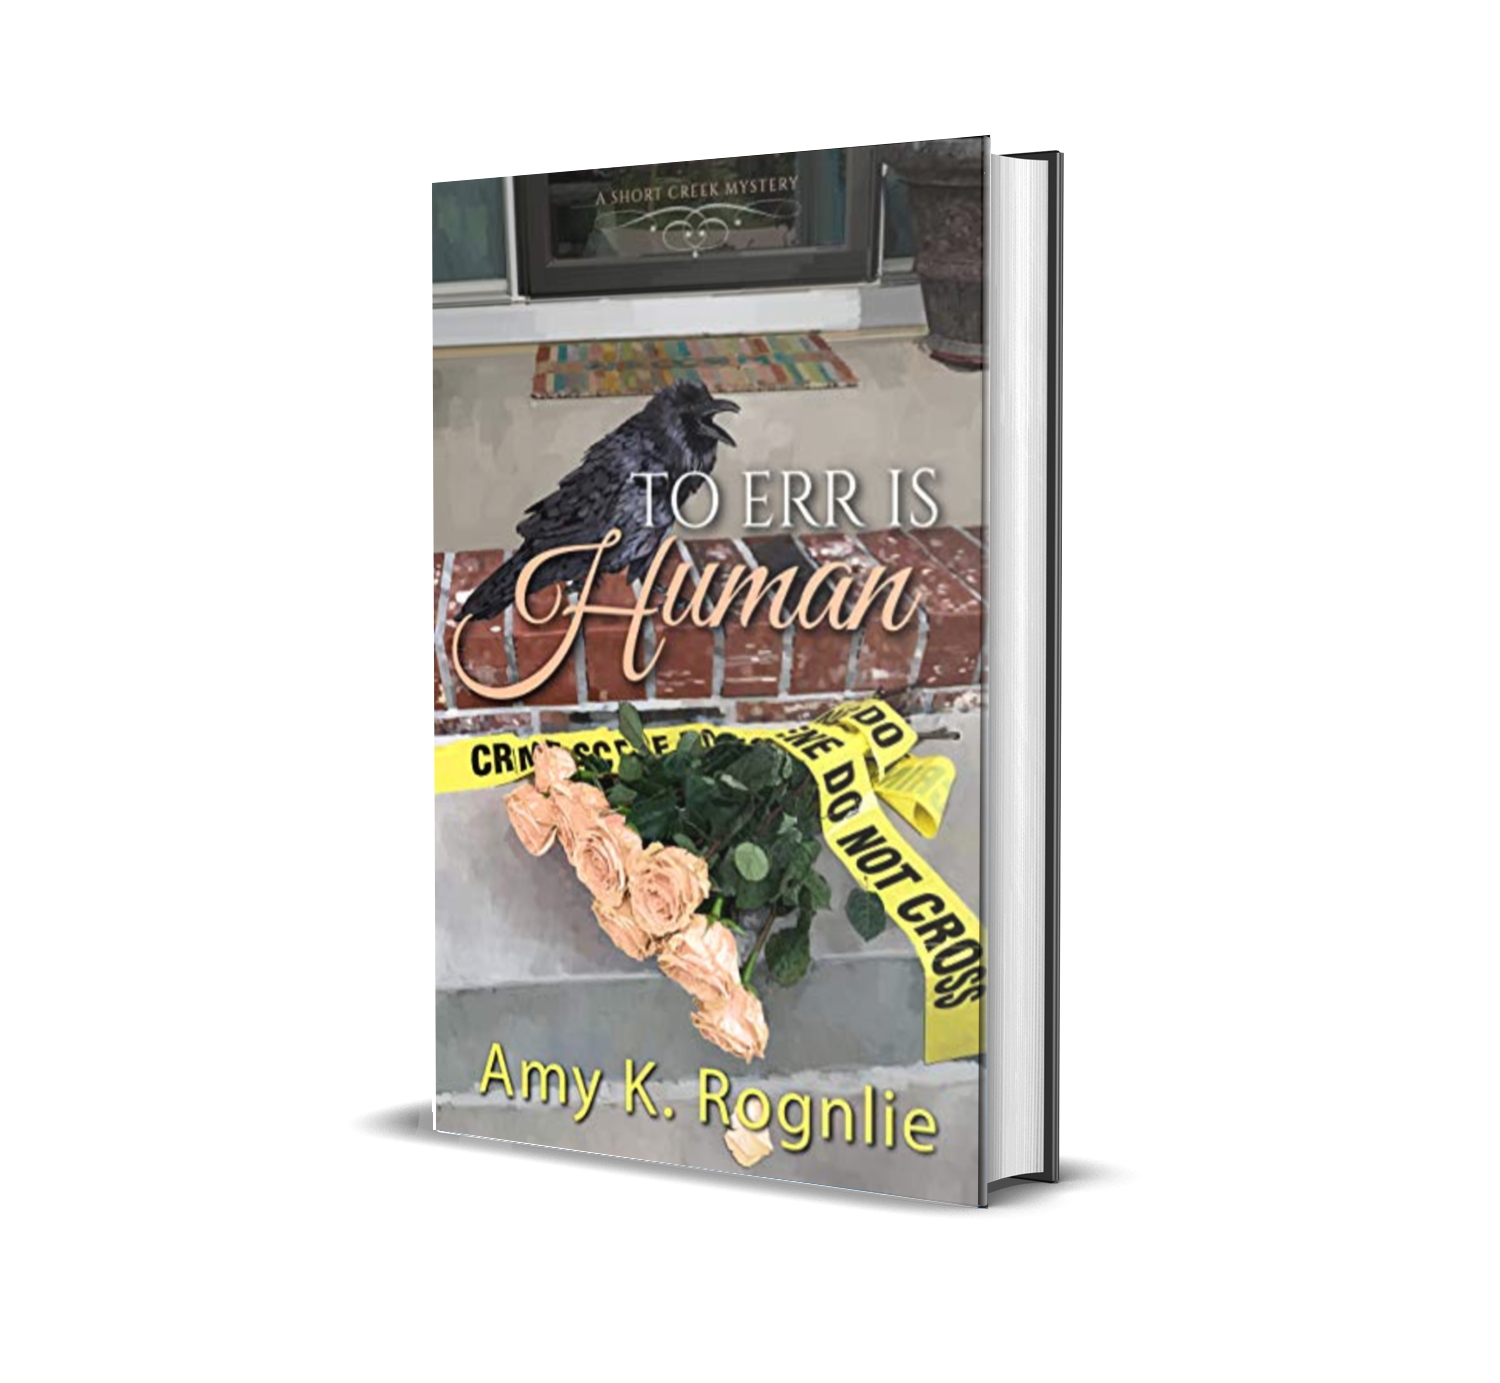 To Err is Human  by Amy K. Rognlie